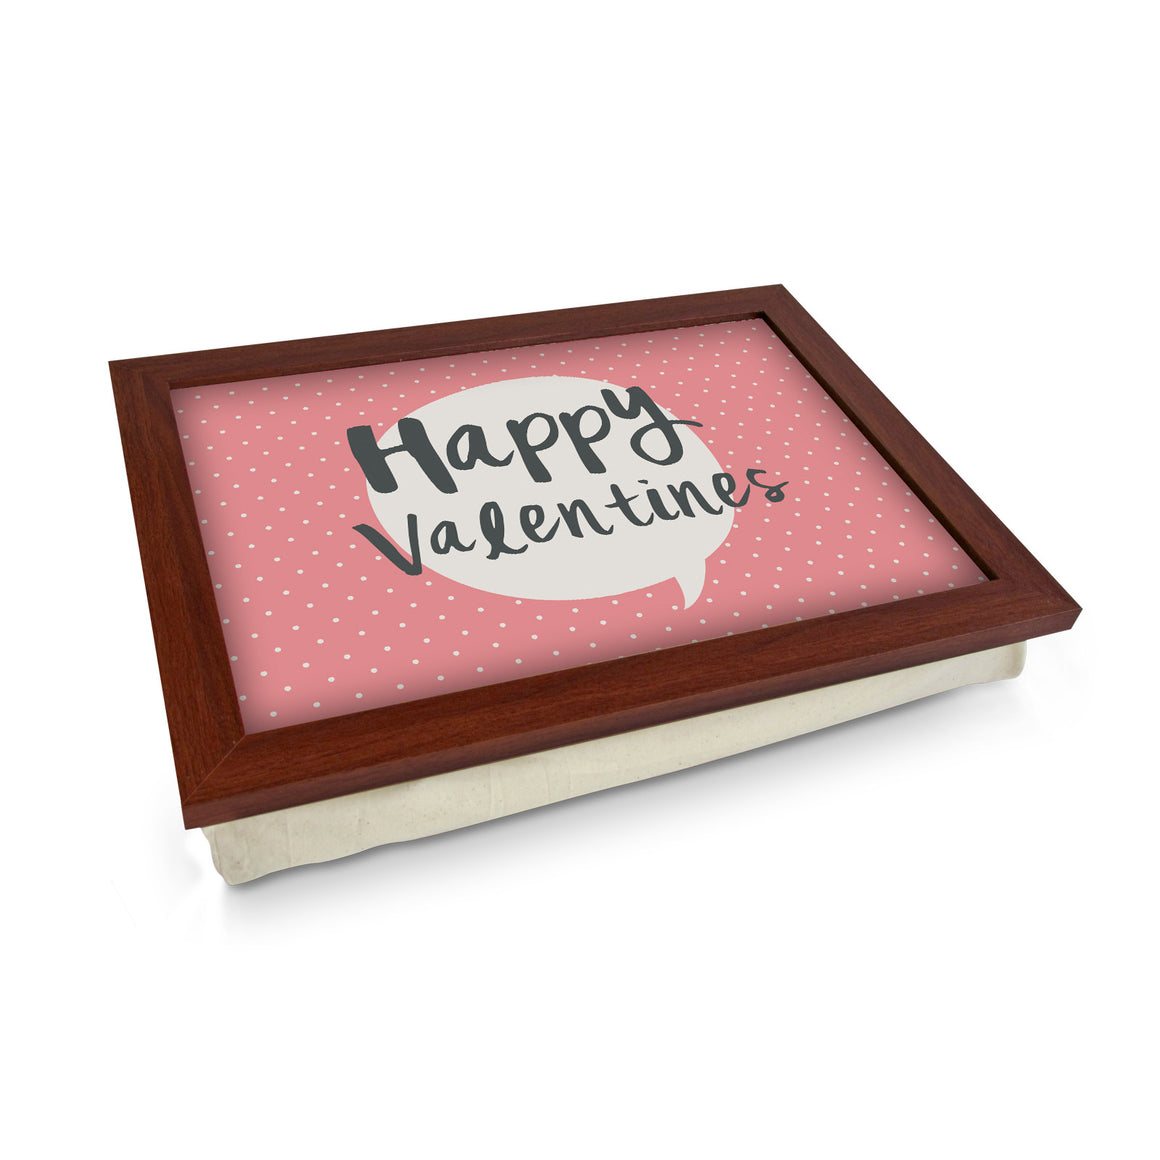 Happy Valentine's Speech Bubble Lap Tray - L0458